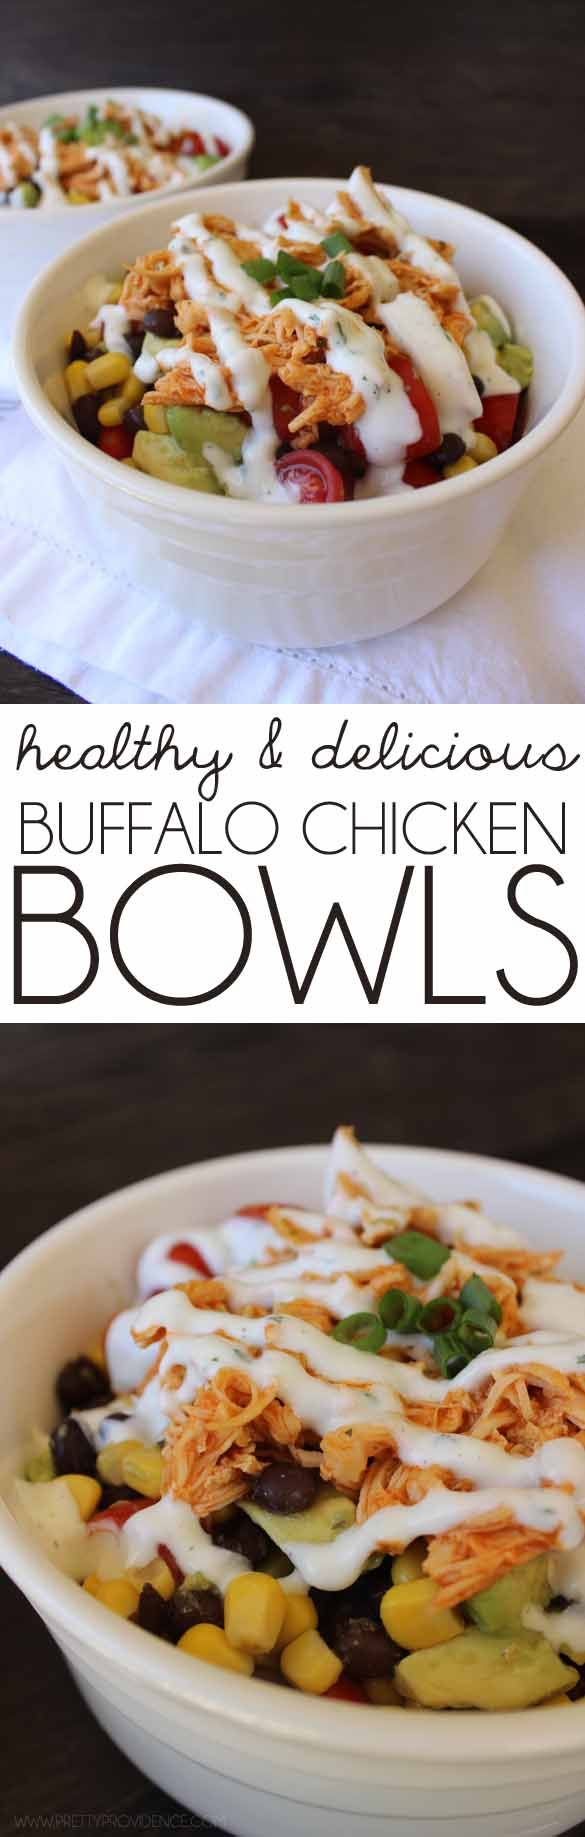 Chicken Healthy Buffalo Bowls town Chicken Buffalo   Chicken  Buffalo Healthy miami Buffalo and Recipe